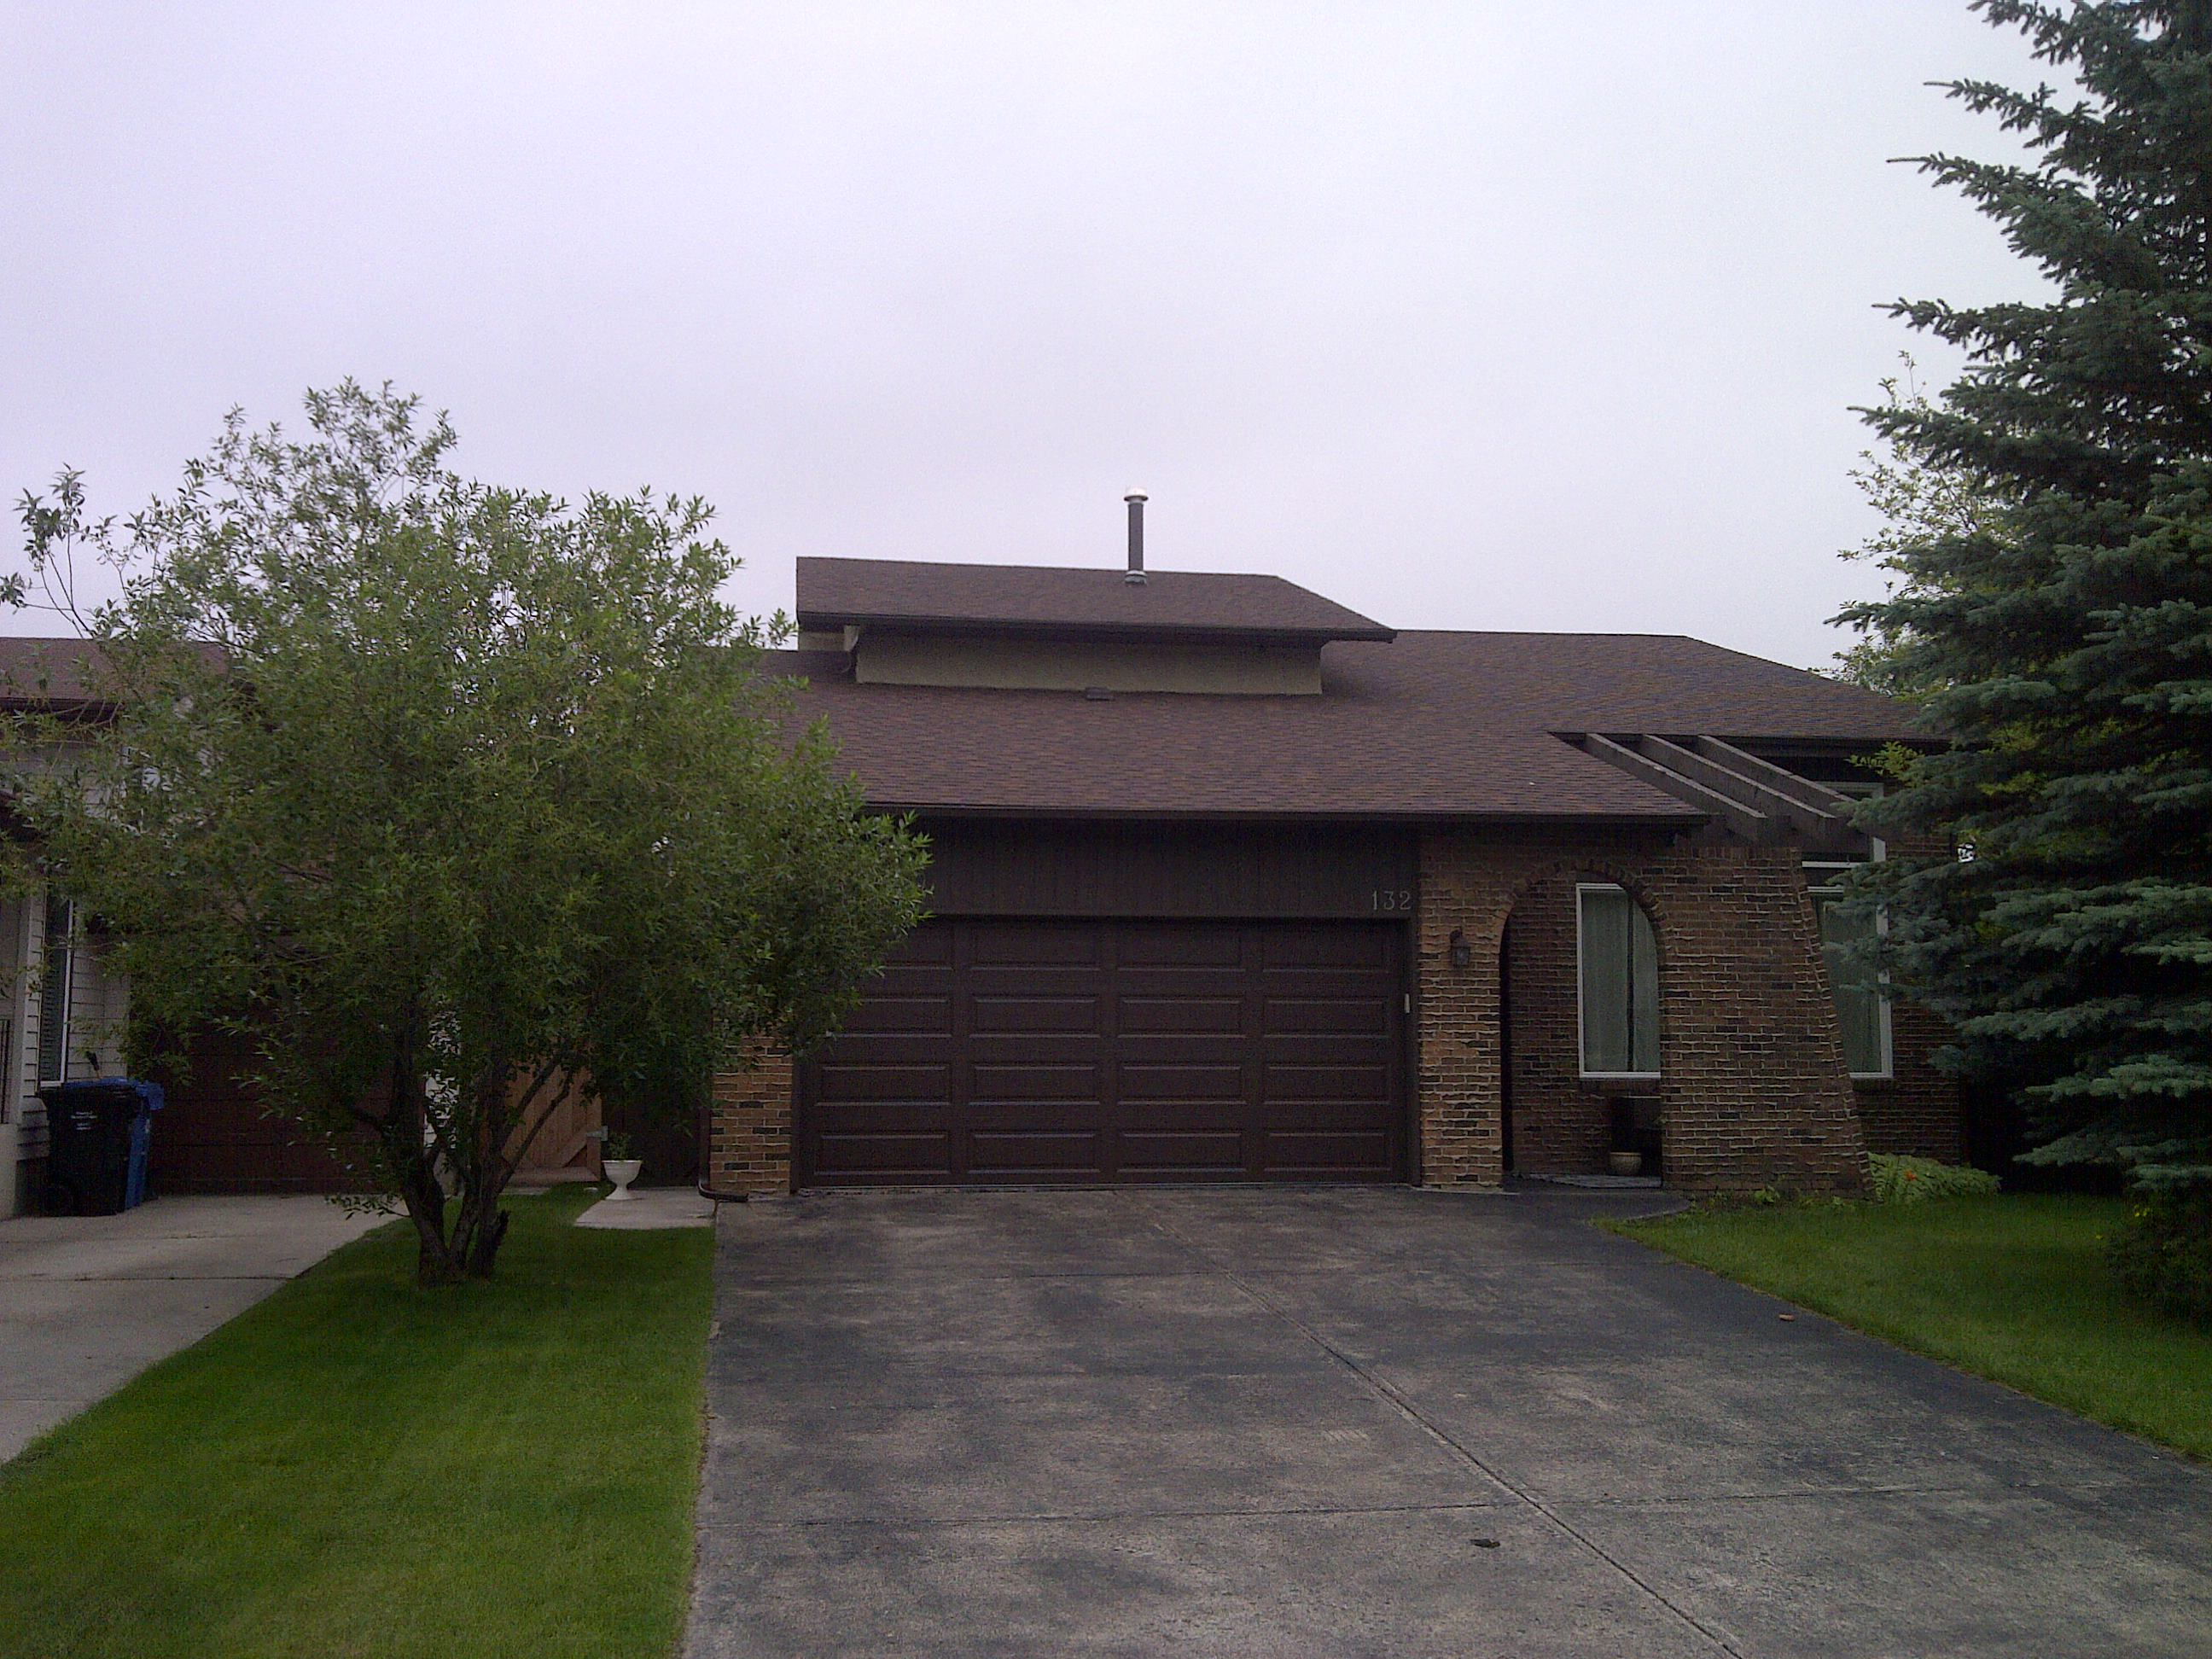 Owens Corning Duration - Brownwood shingle